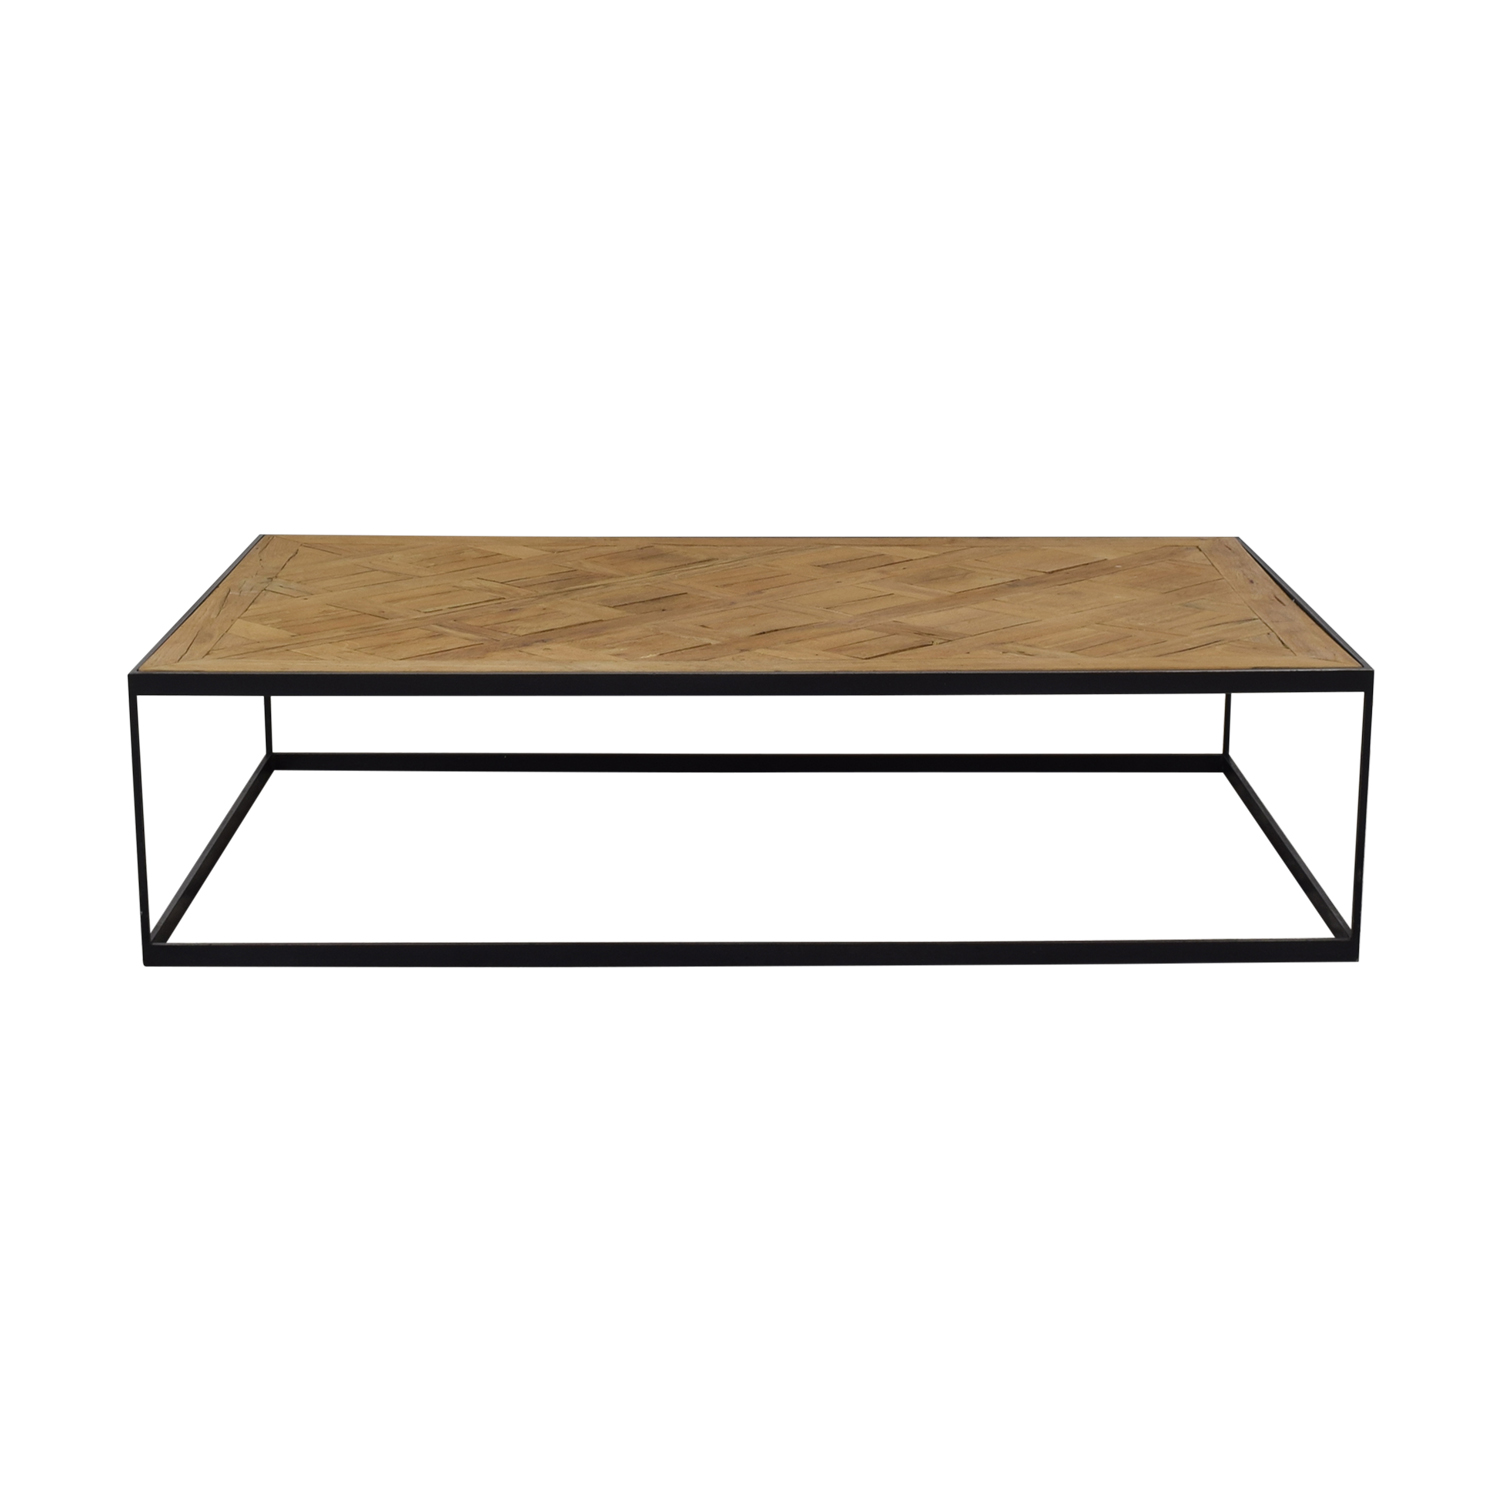 Restoration Hardware Restoration Hardware Square Coffee Table second hand